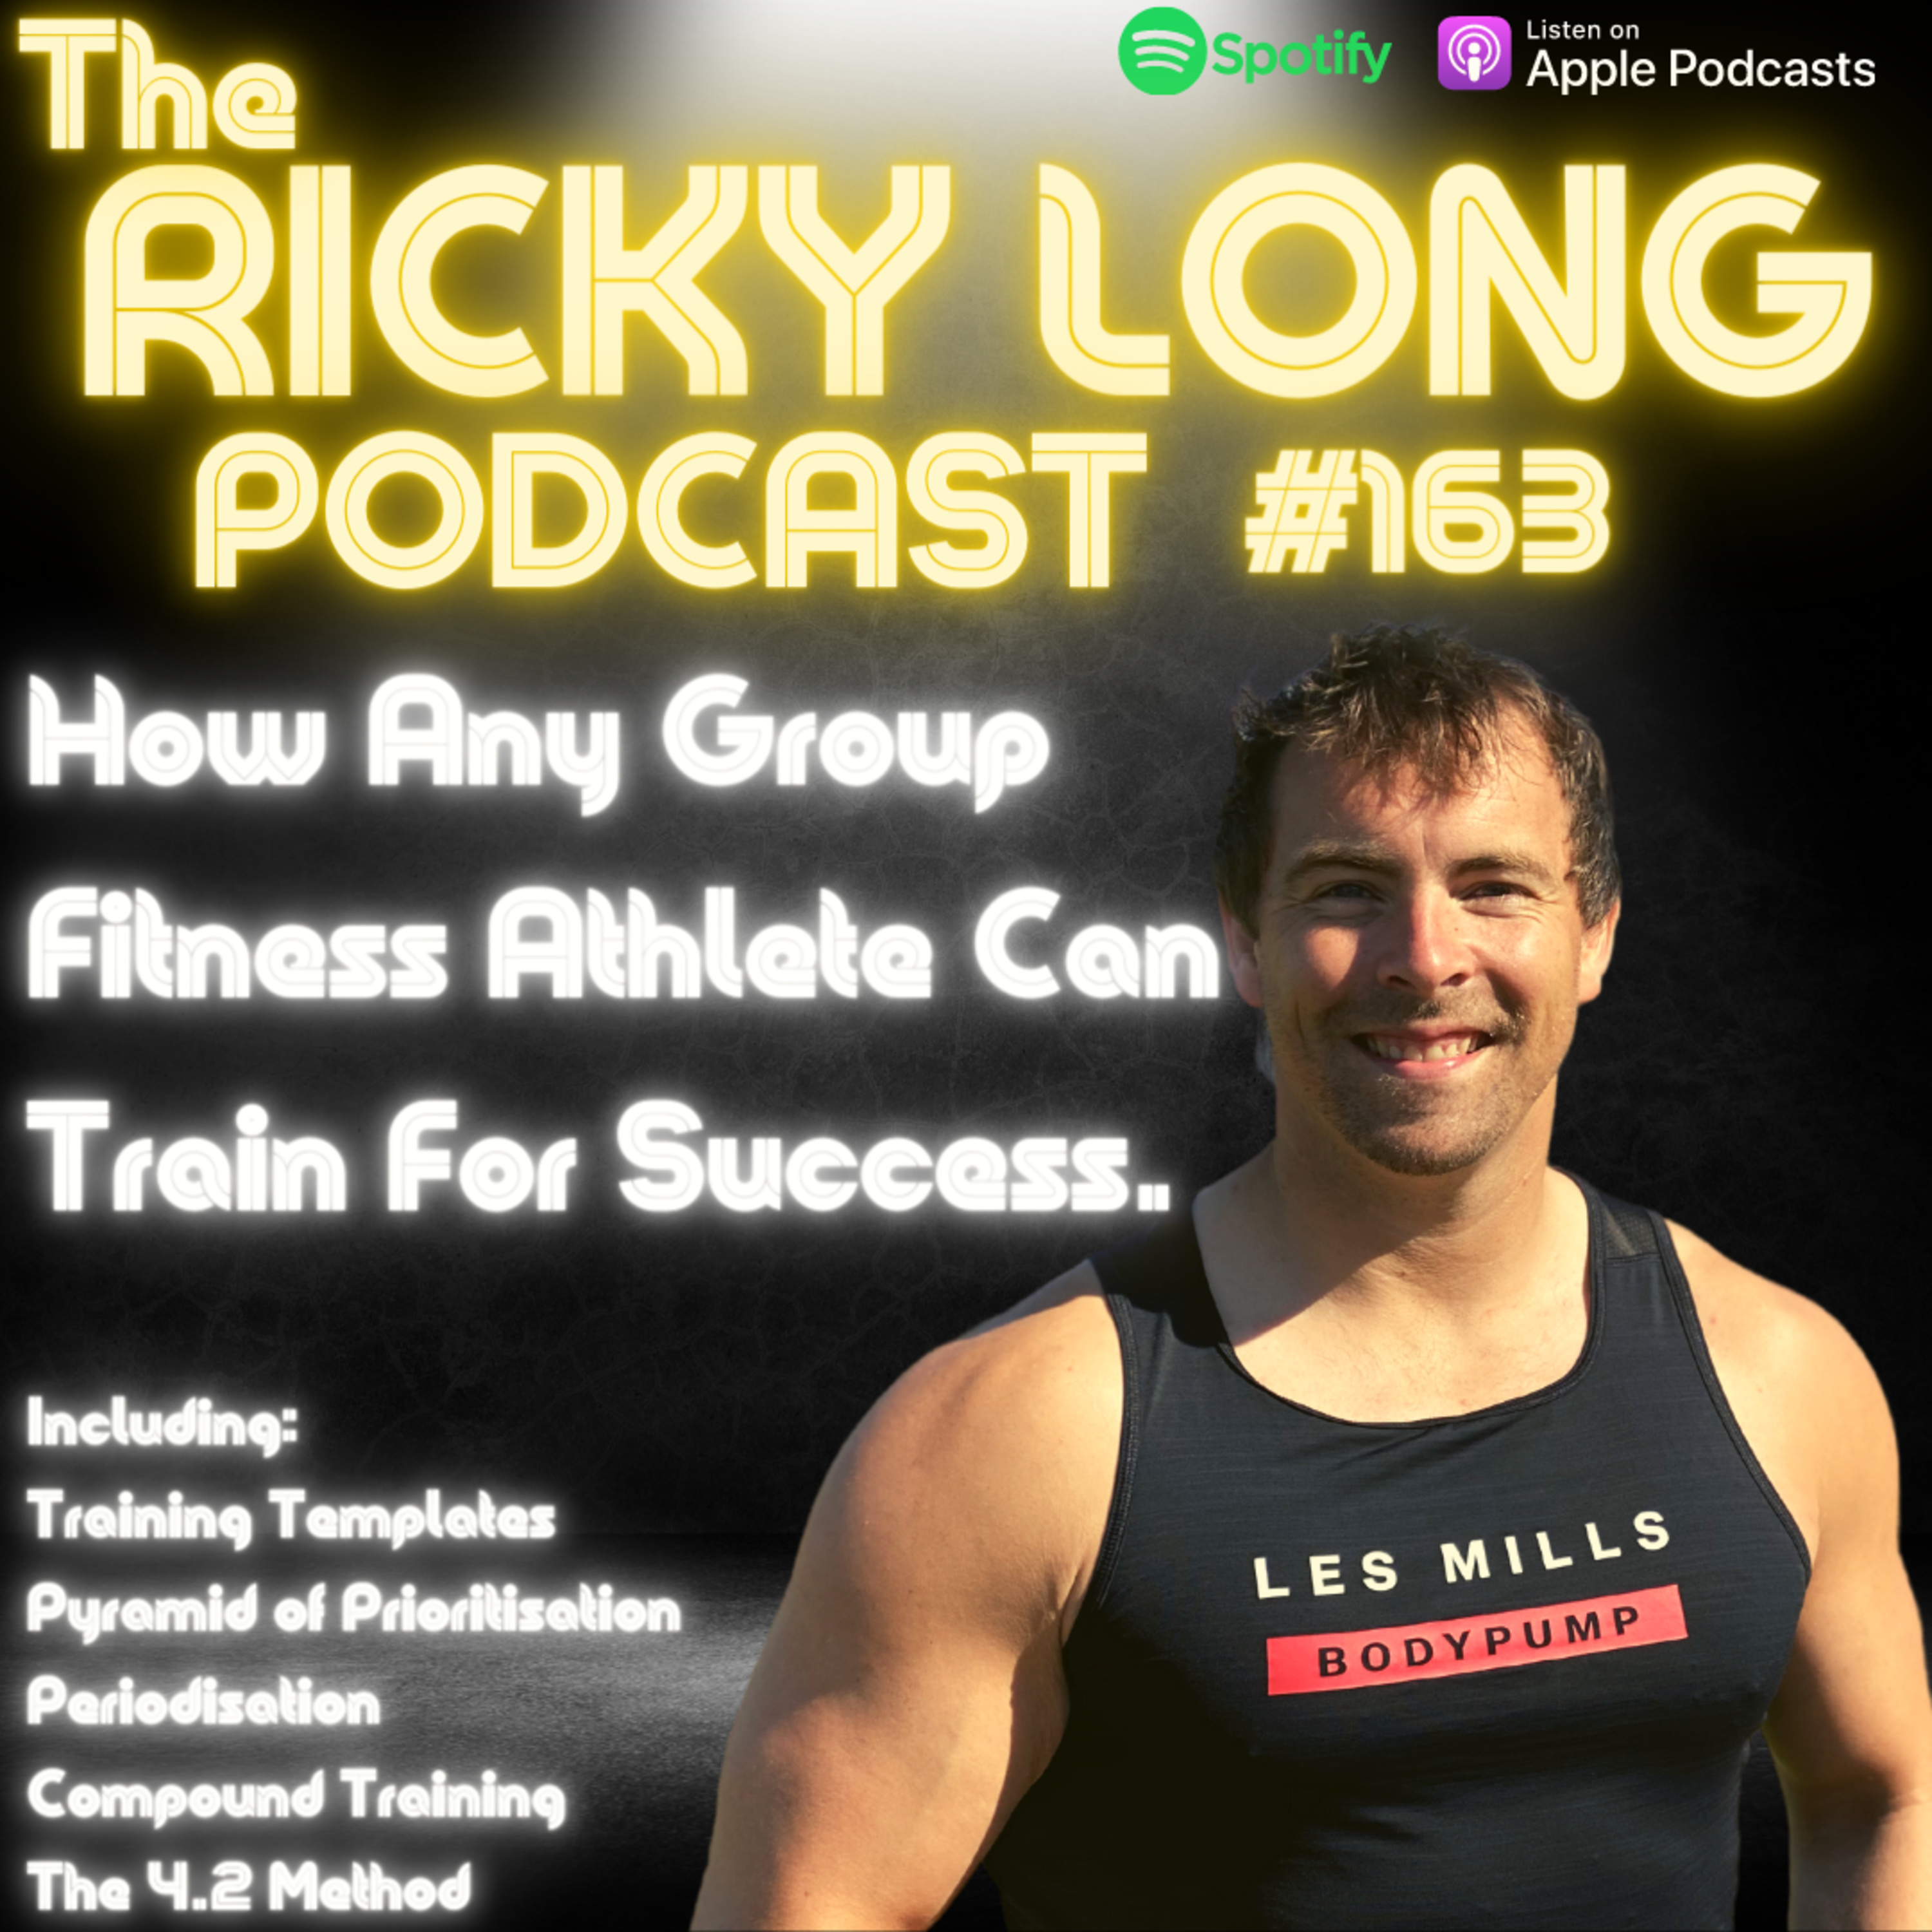 #163 How Any Group Fitness Athlete Can